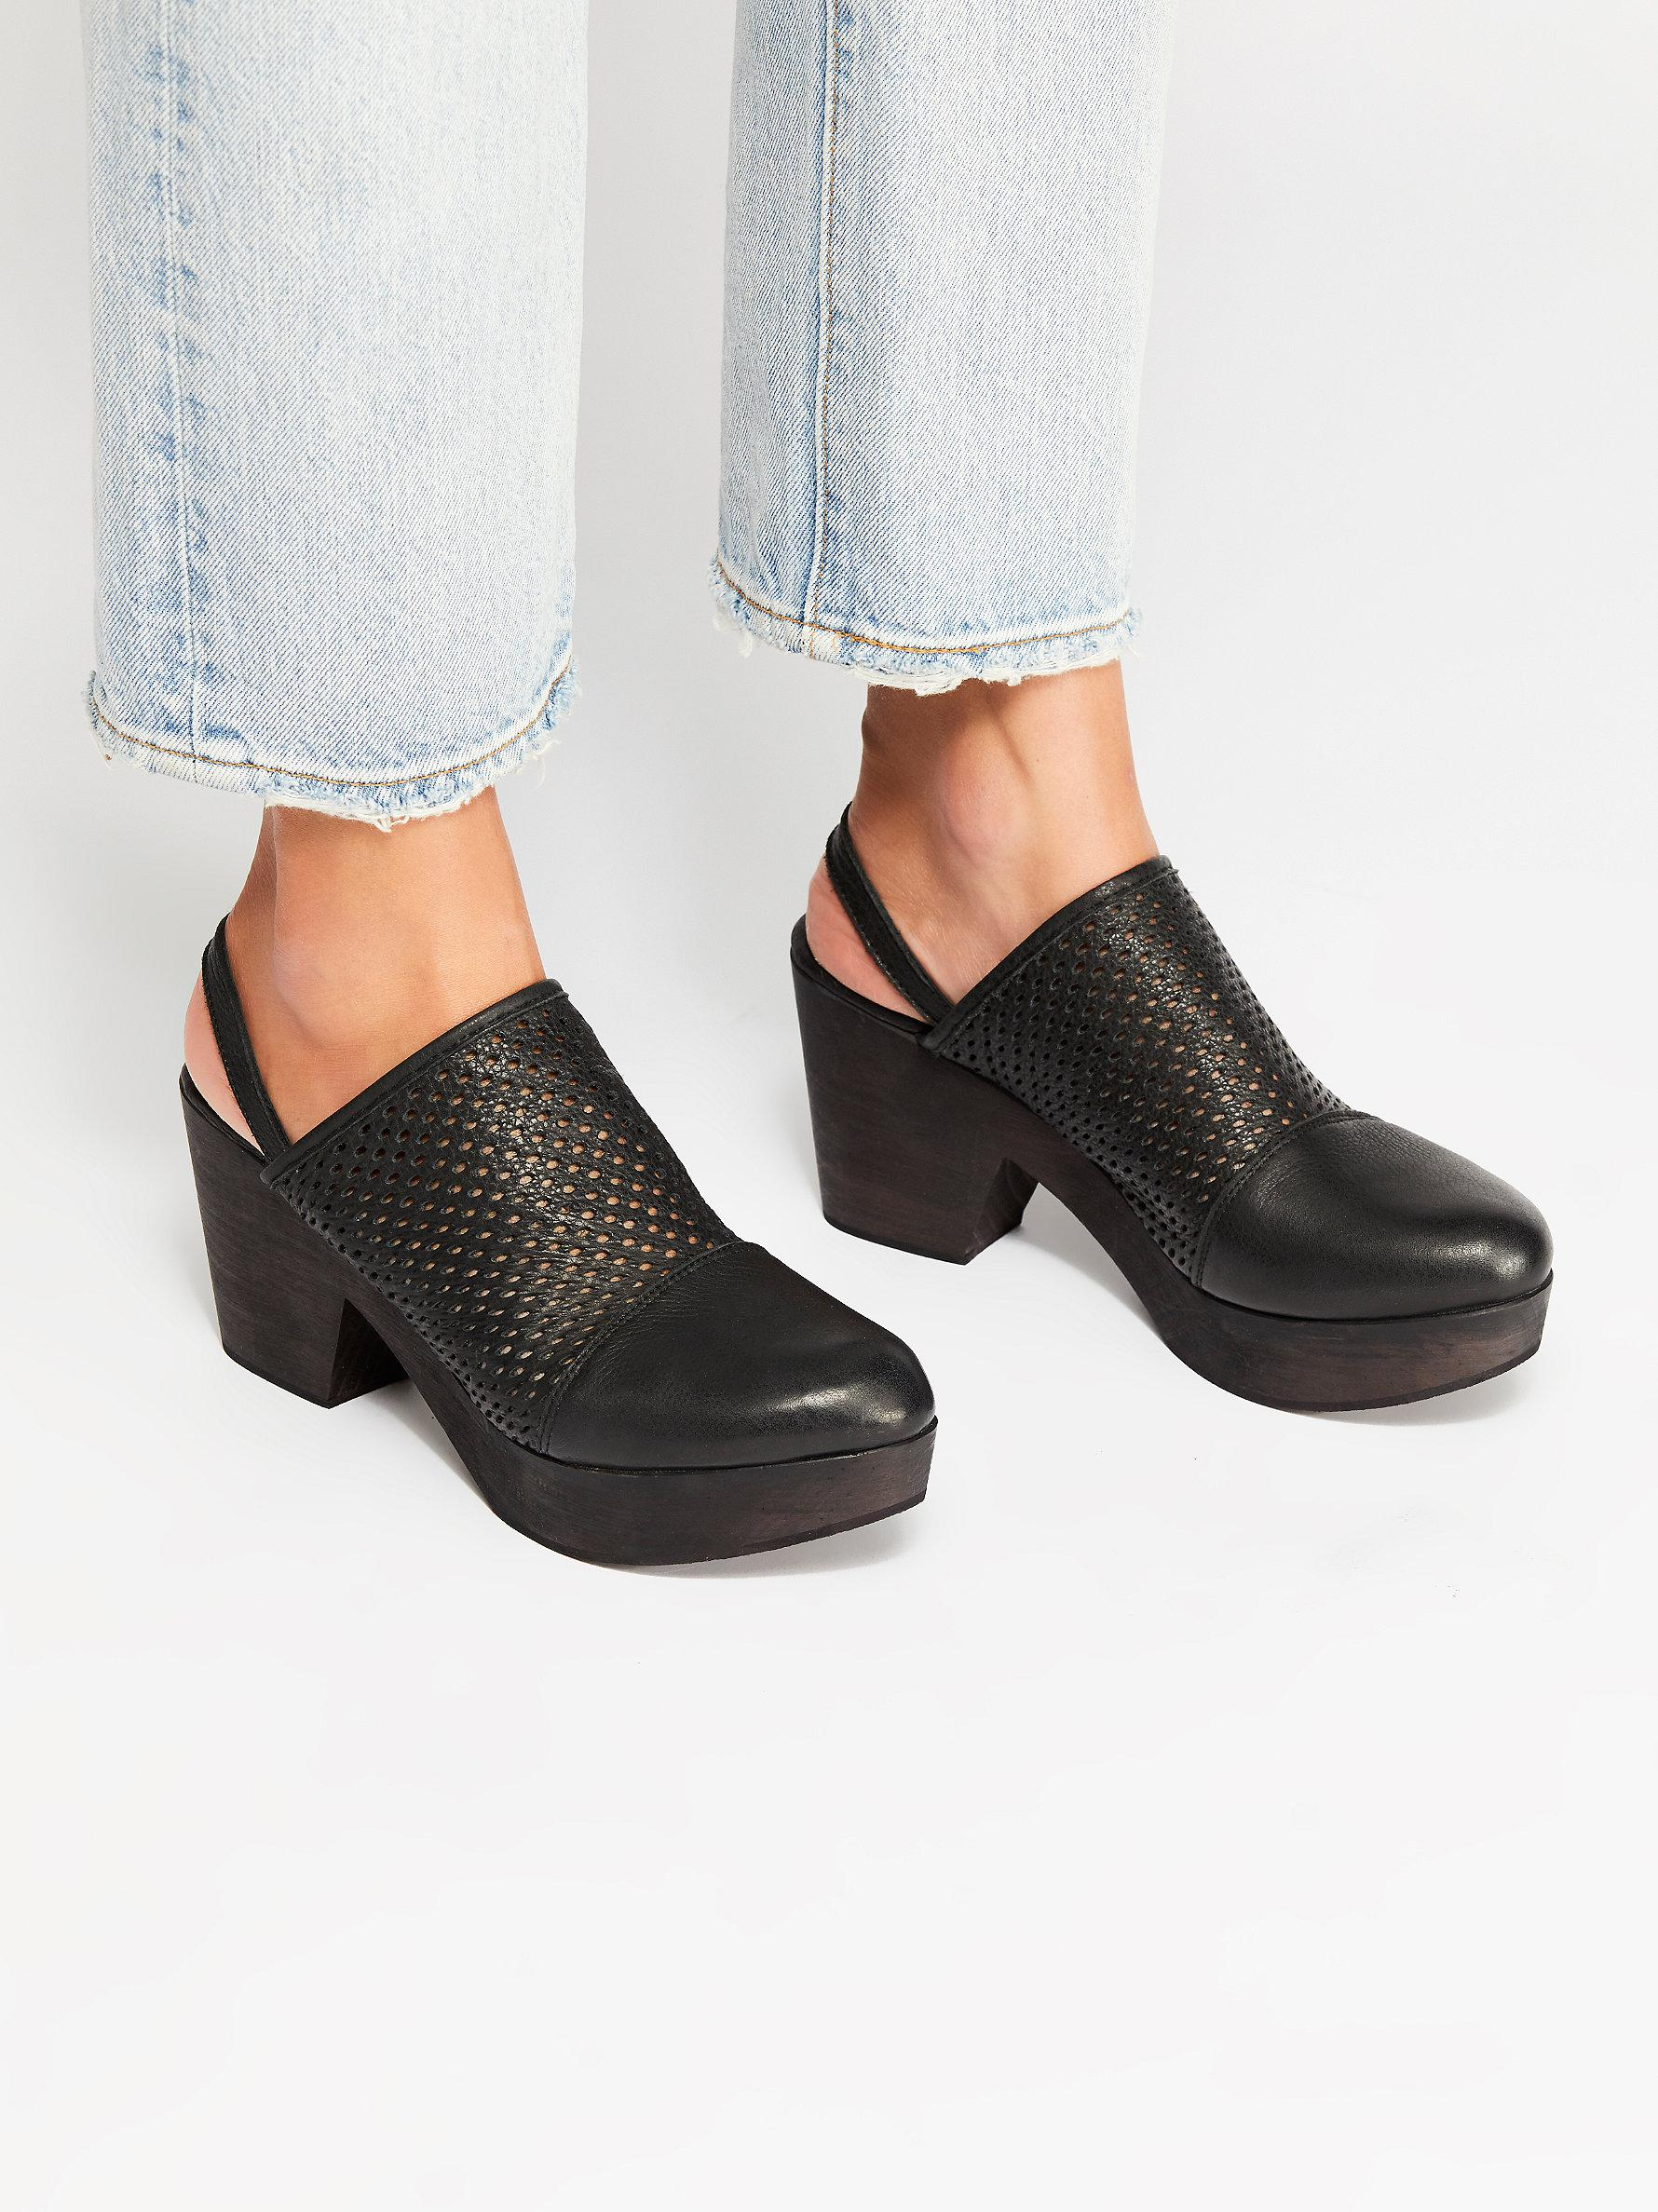 1f551a214a4 Free People Logan Clog By Fp Collection in Black - Lyst